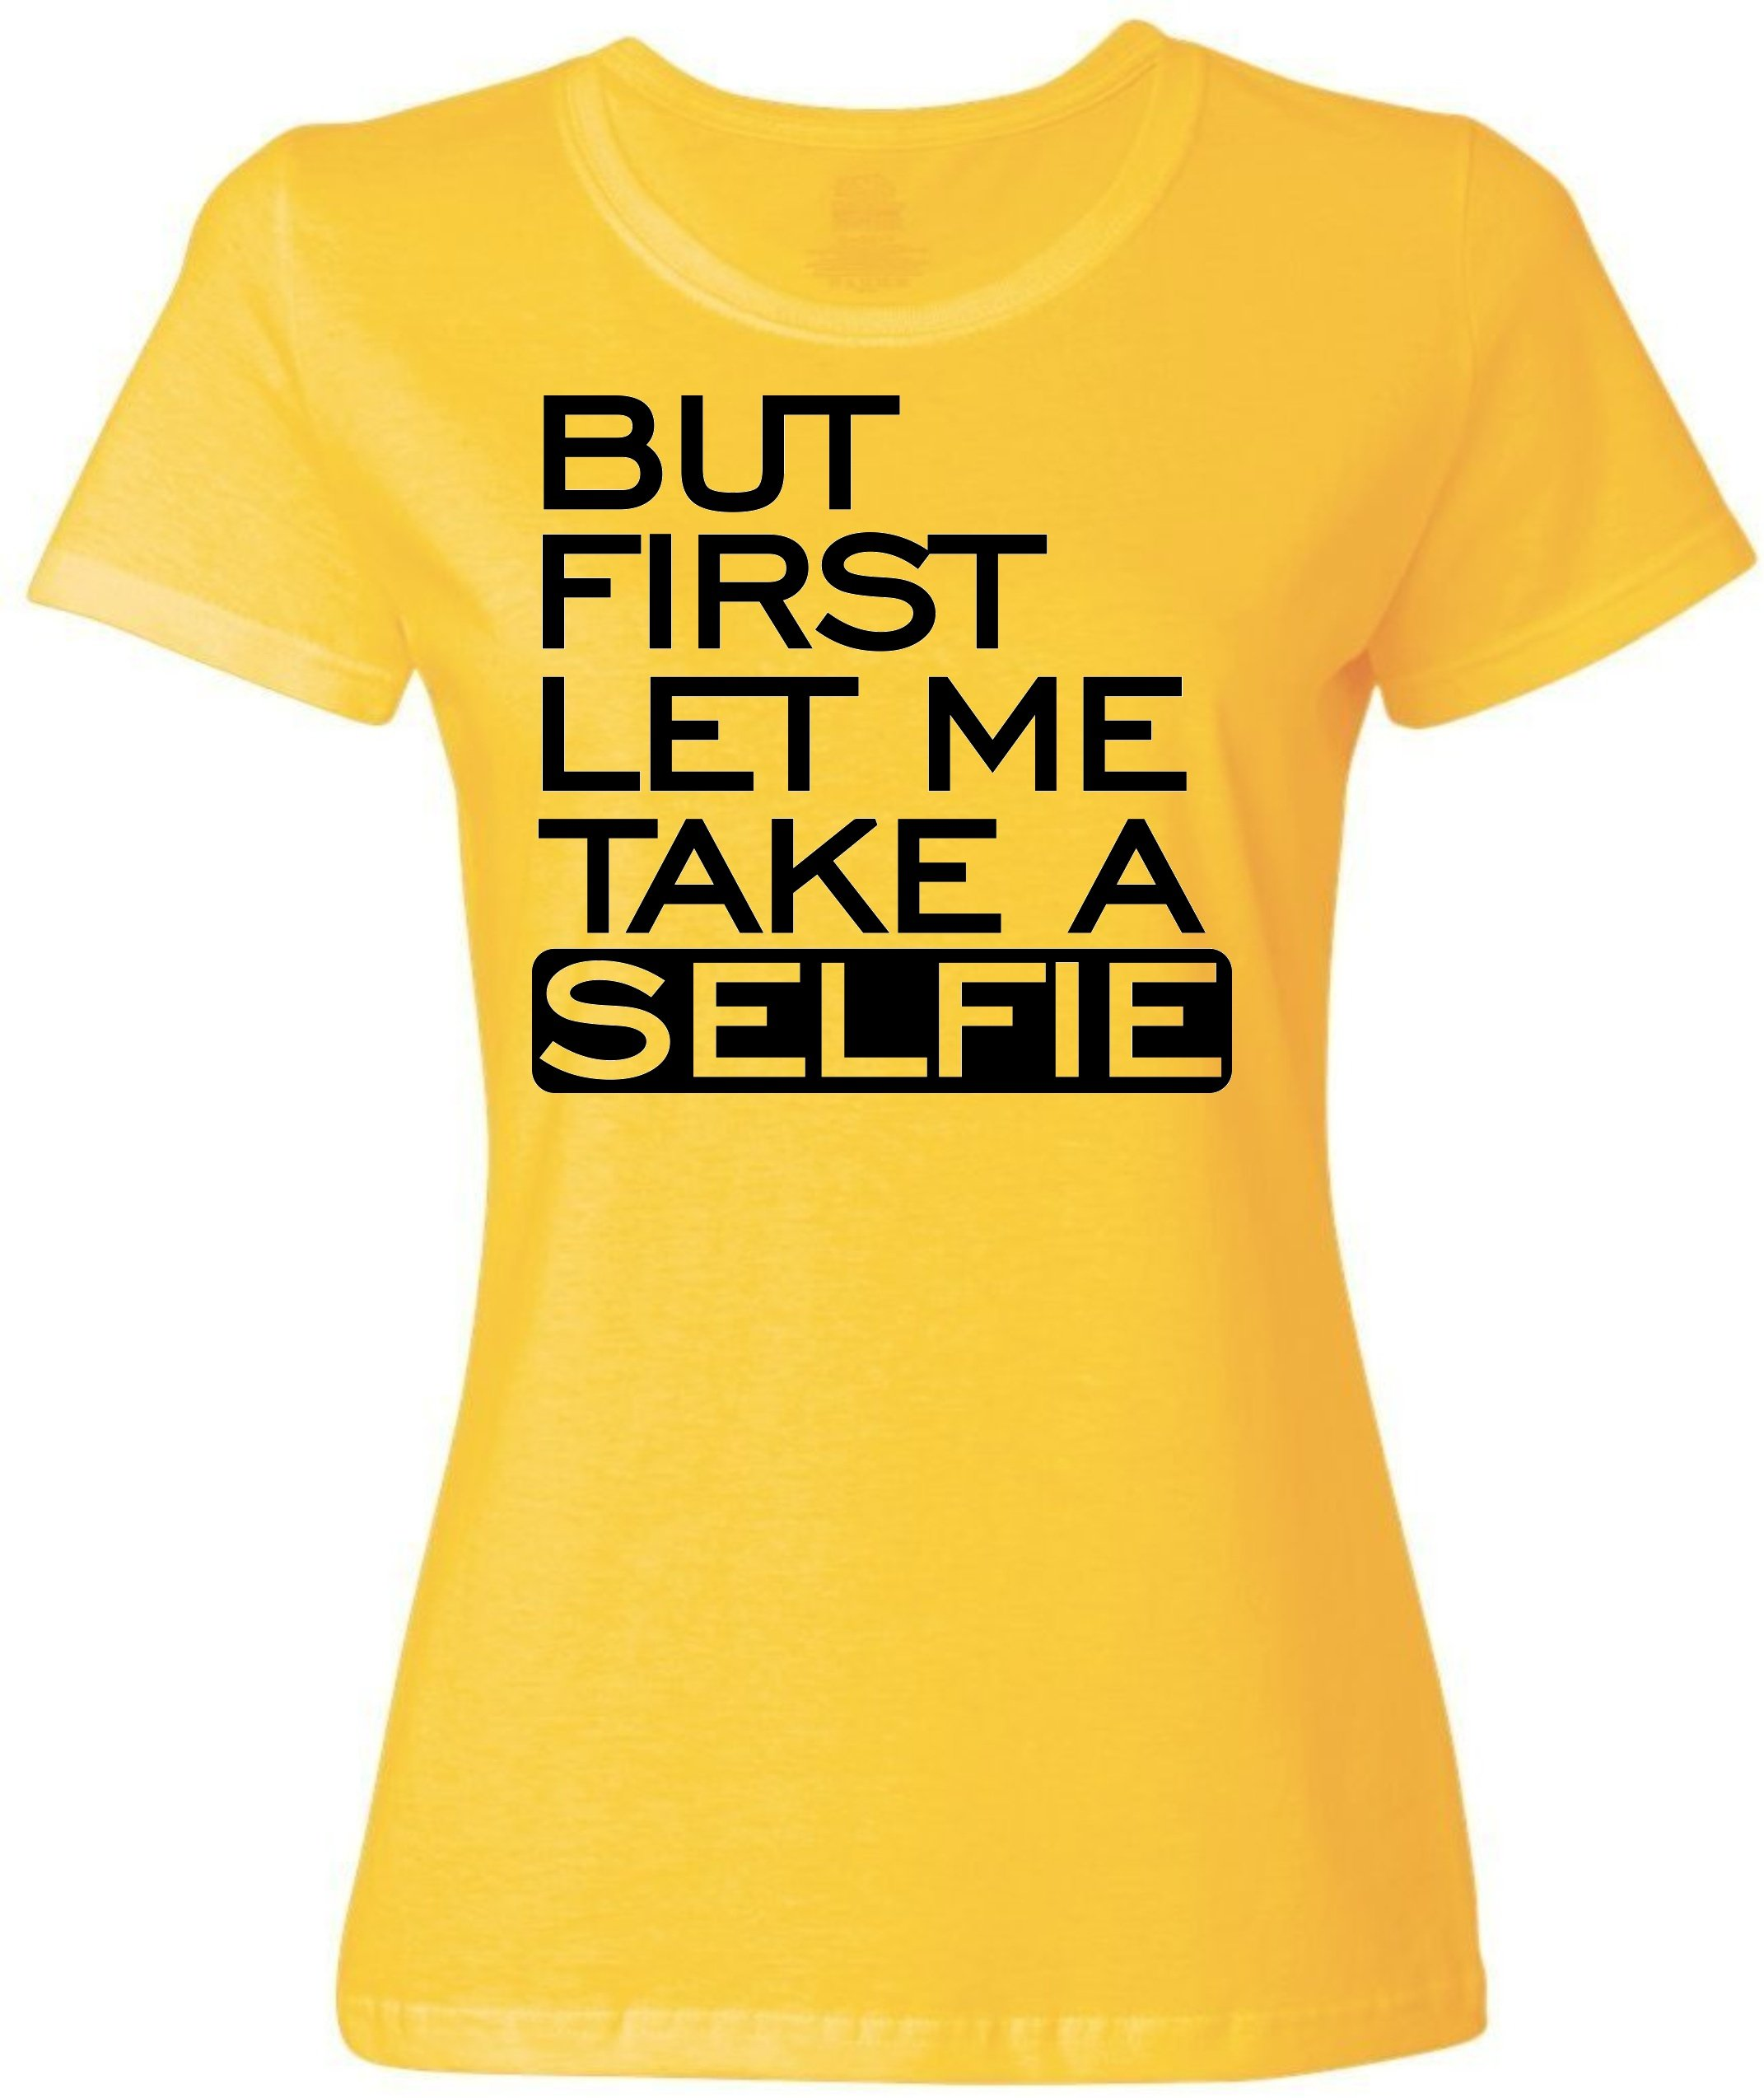 But First Let Me Take A Selfie Funny 3208 Shirts